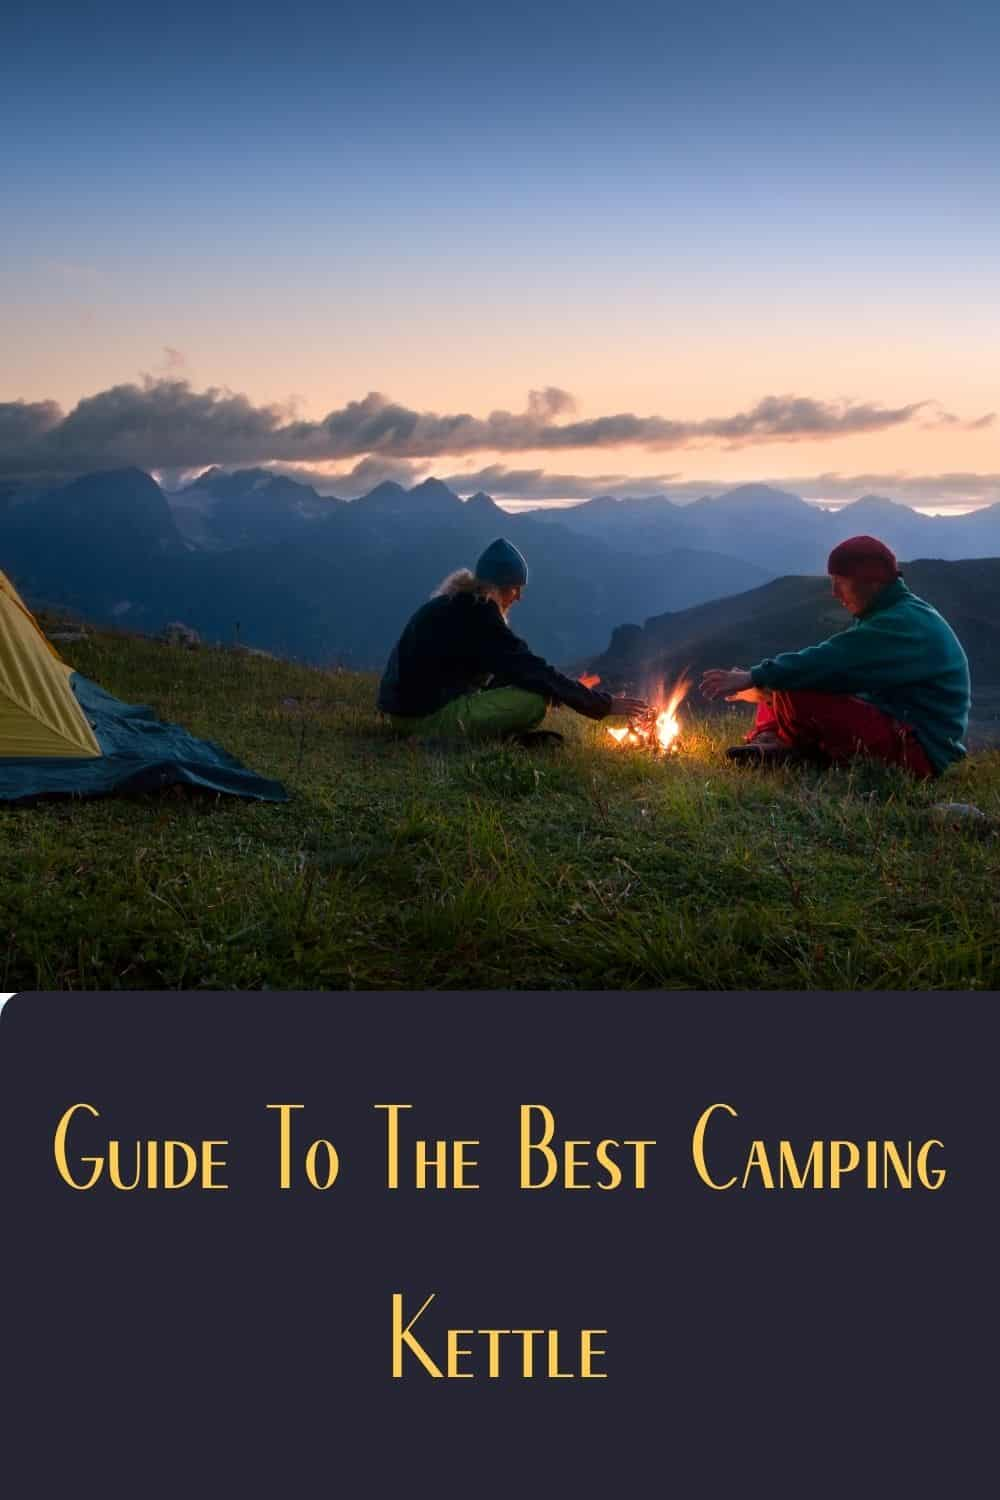 Pinterest image for Guide To The Best Camping Kettle